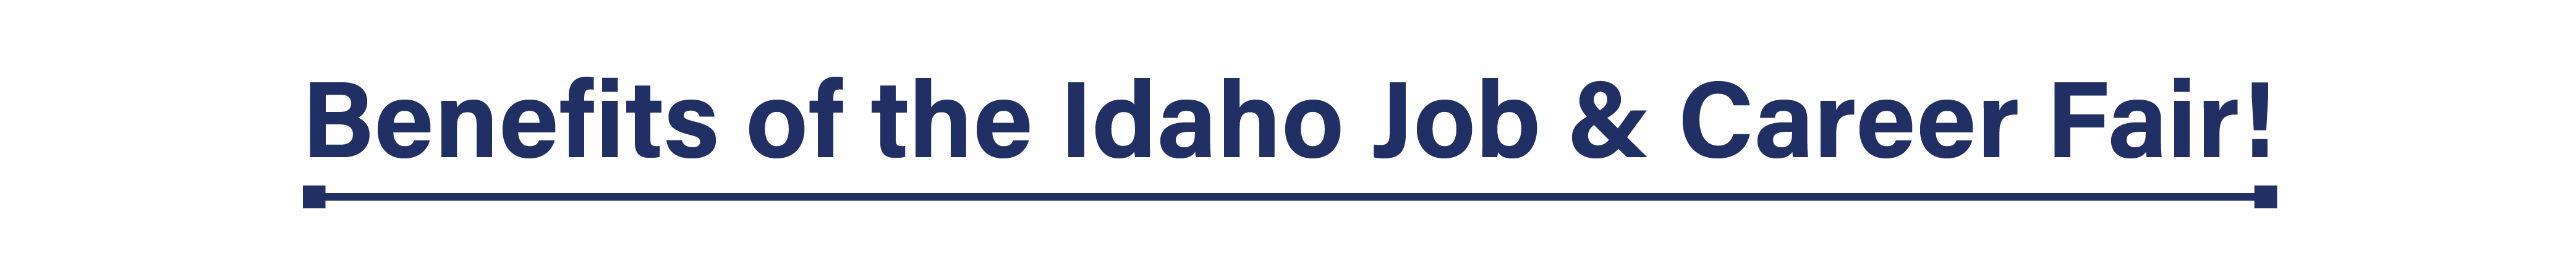 Benefits of the Idaho Job & Career Fair